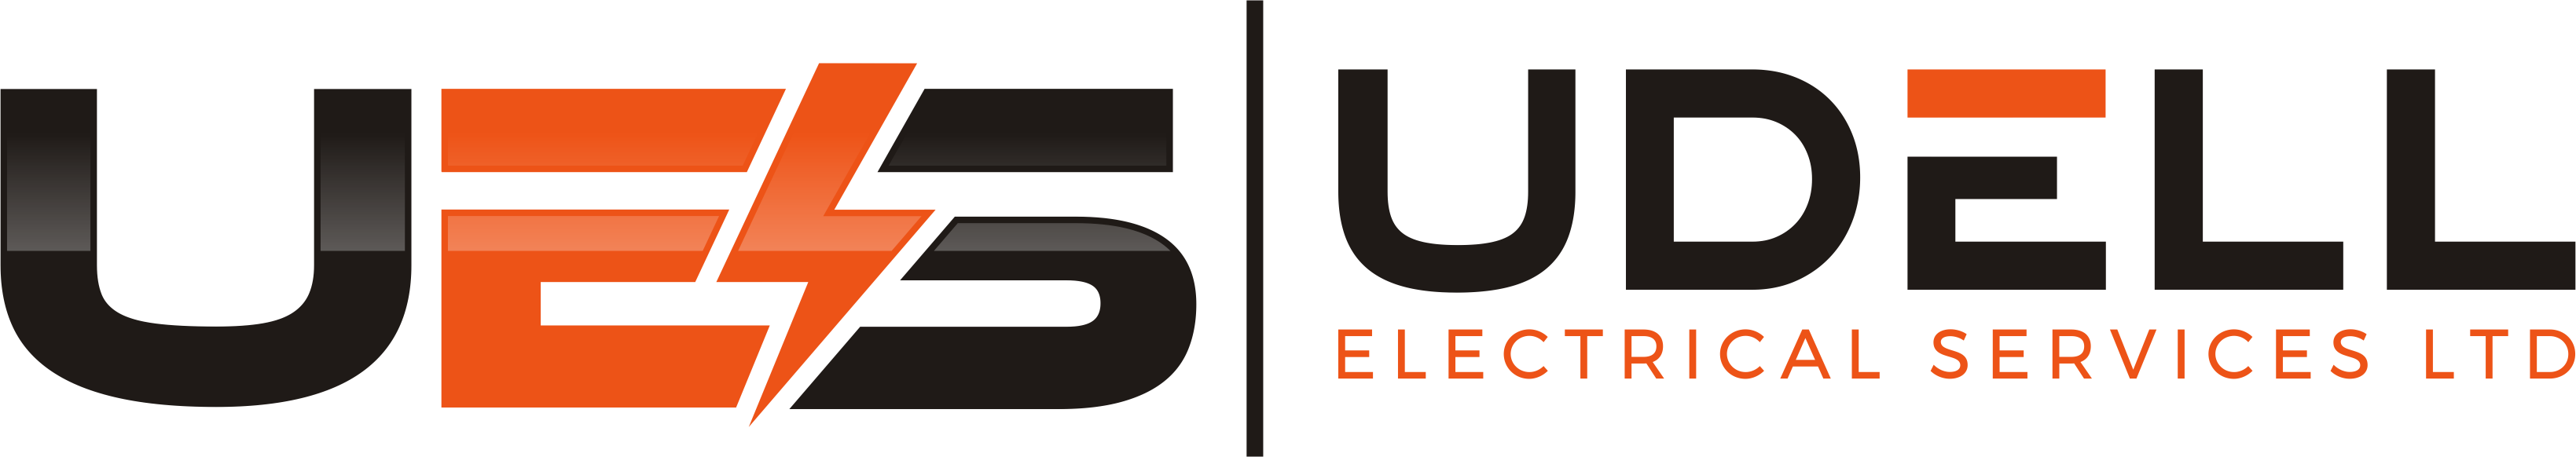 Udell Electrical Services